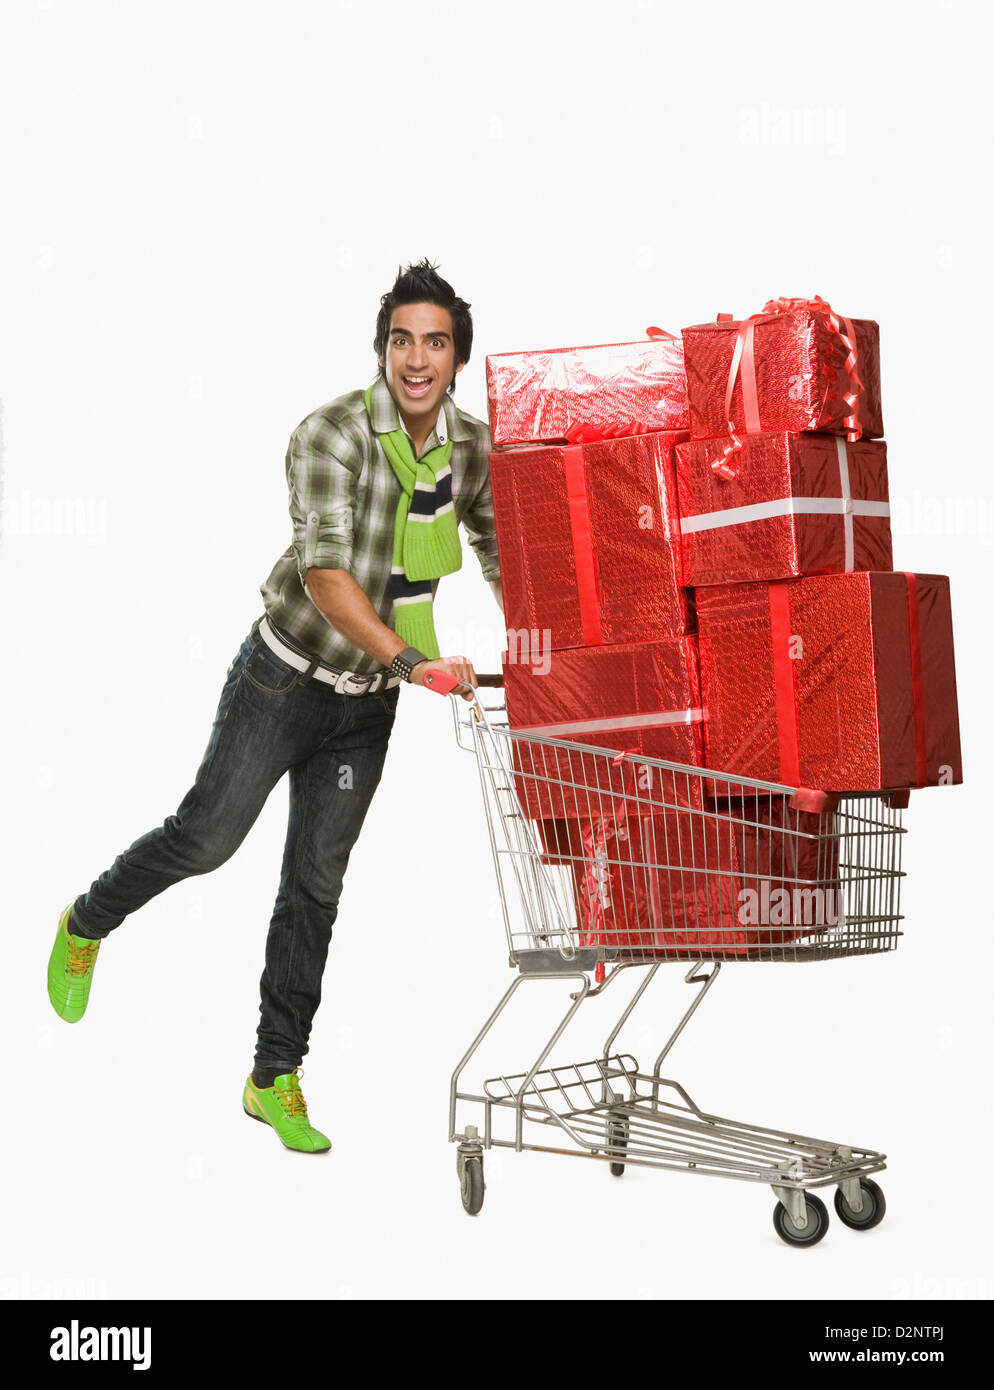 Man pushing a shopping cart filled with gifts - Stock Image